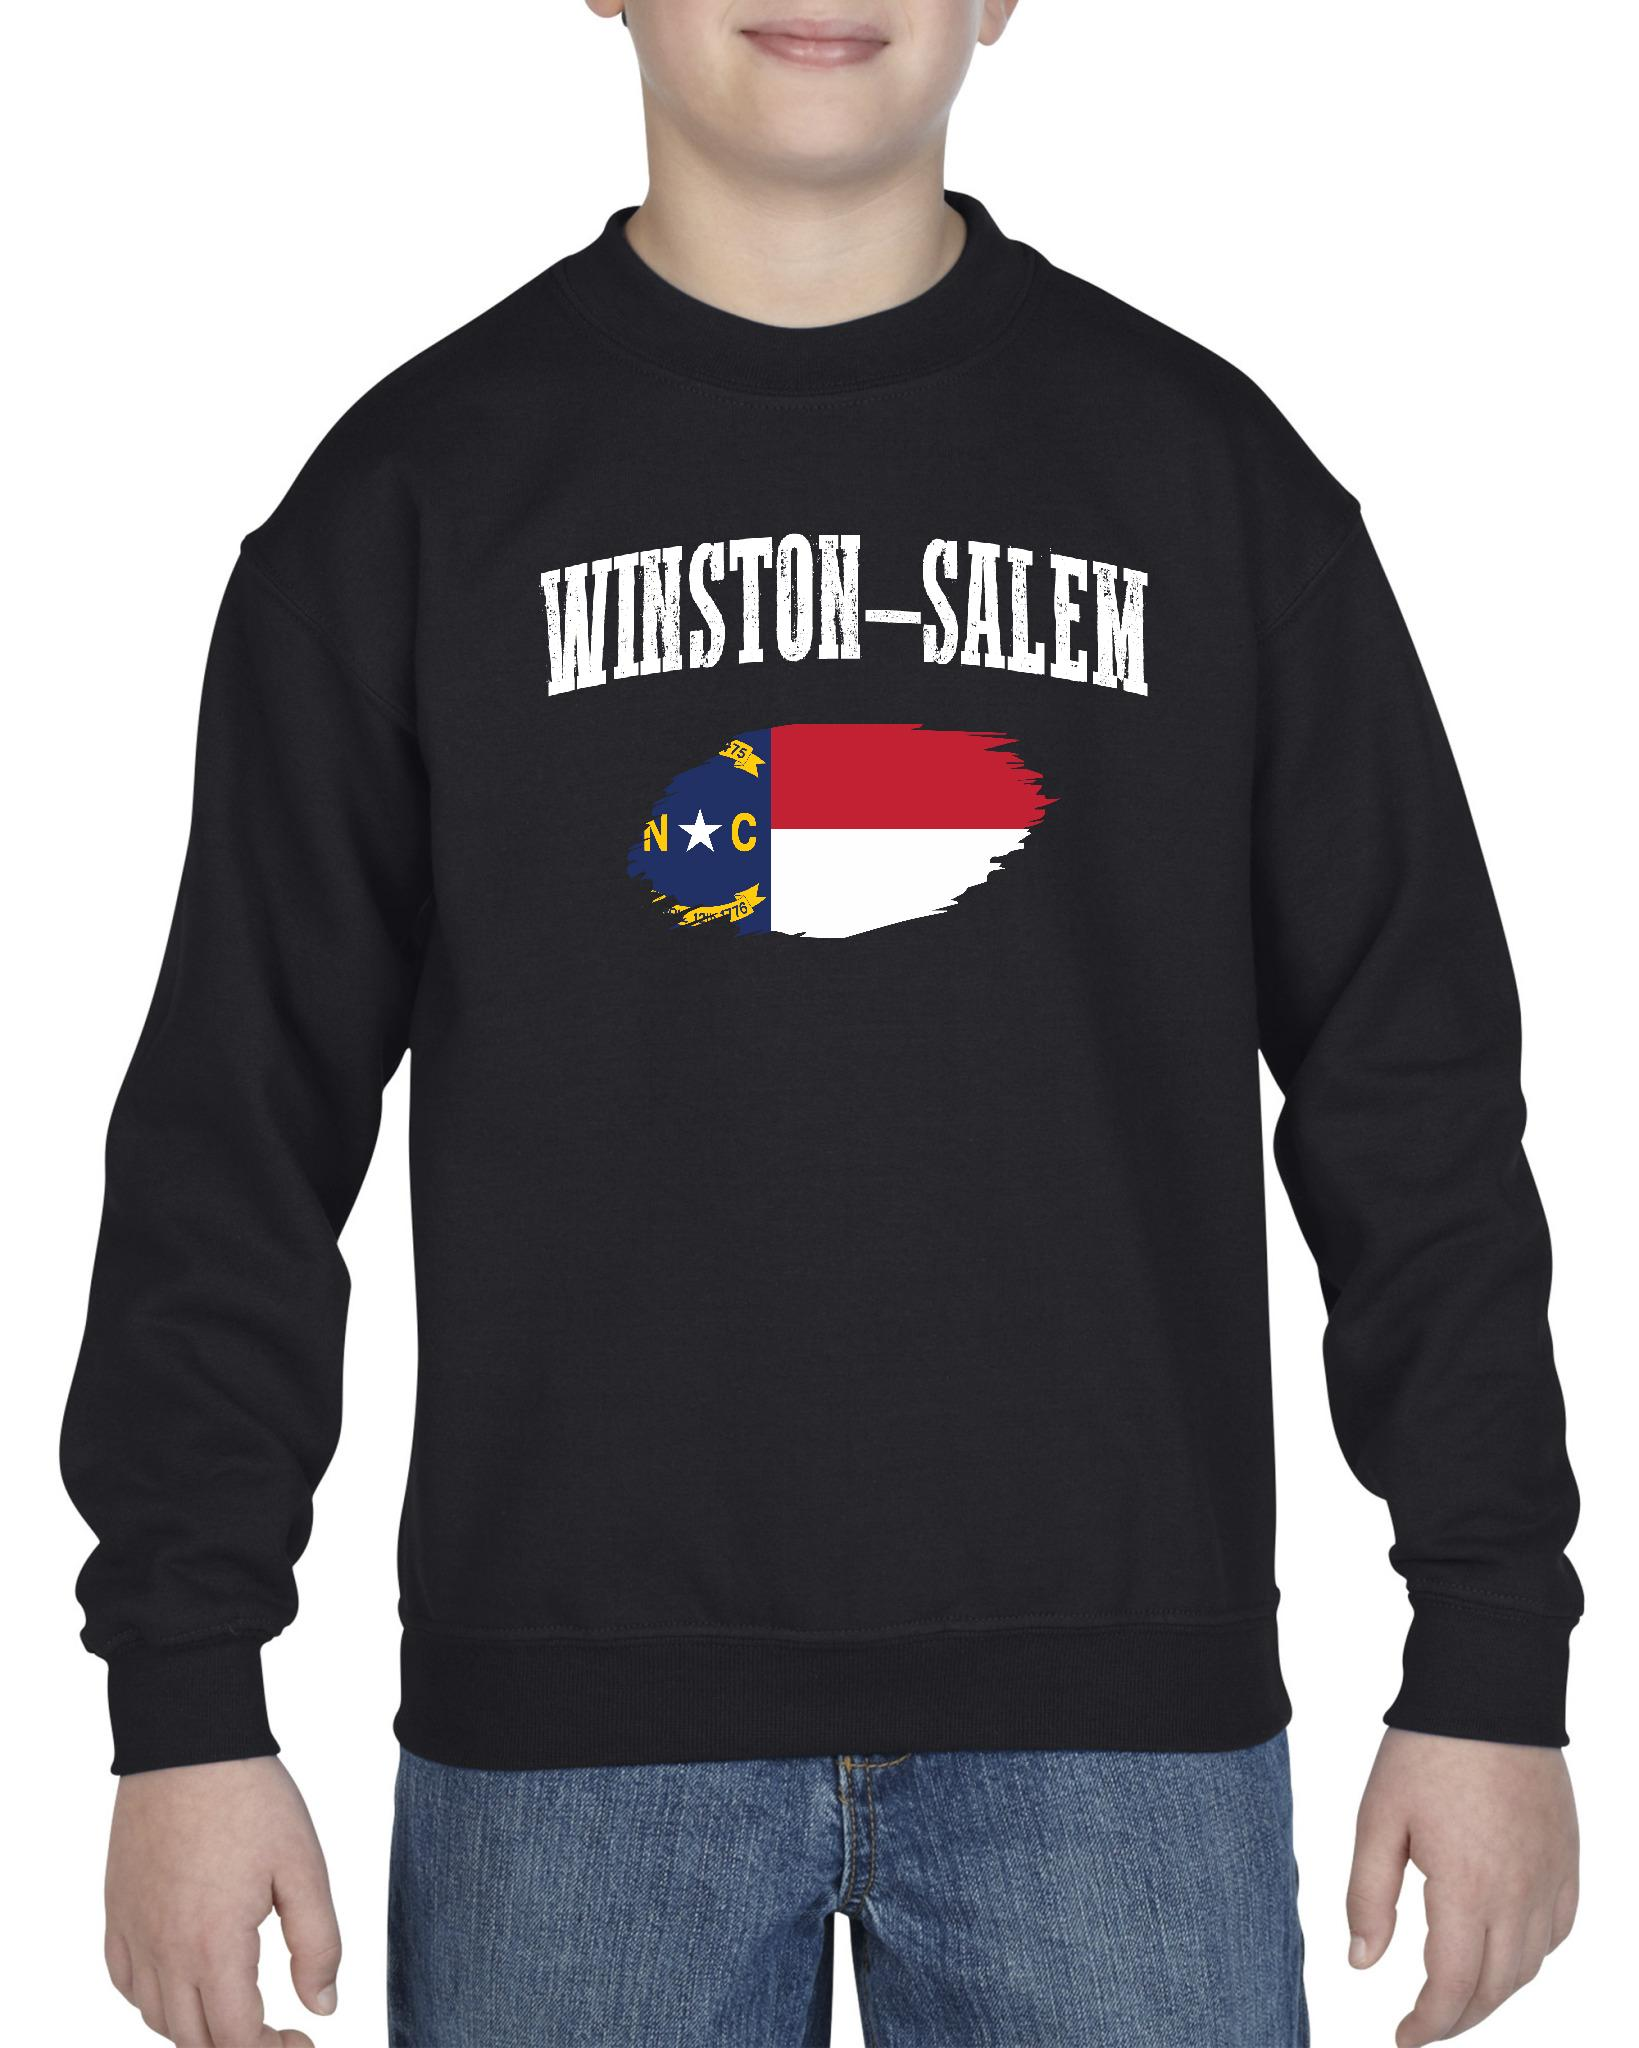 Winston Salem North Carolina Youth Crewneck Sweatshirt